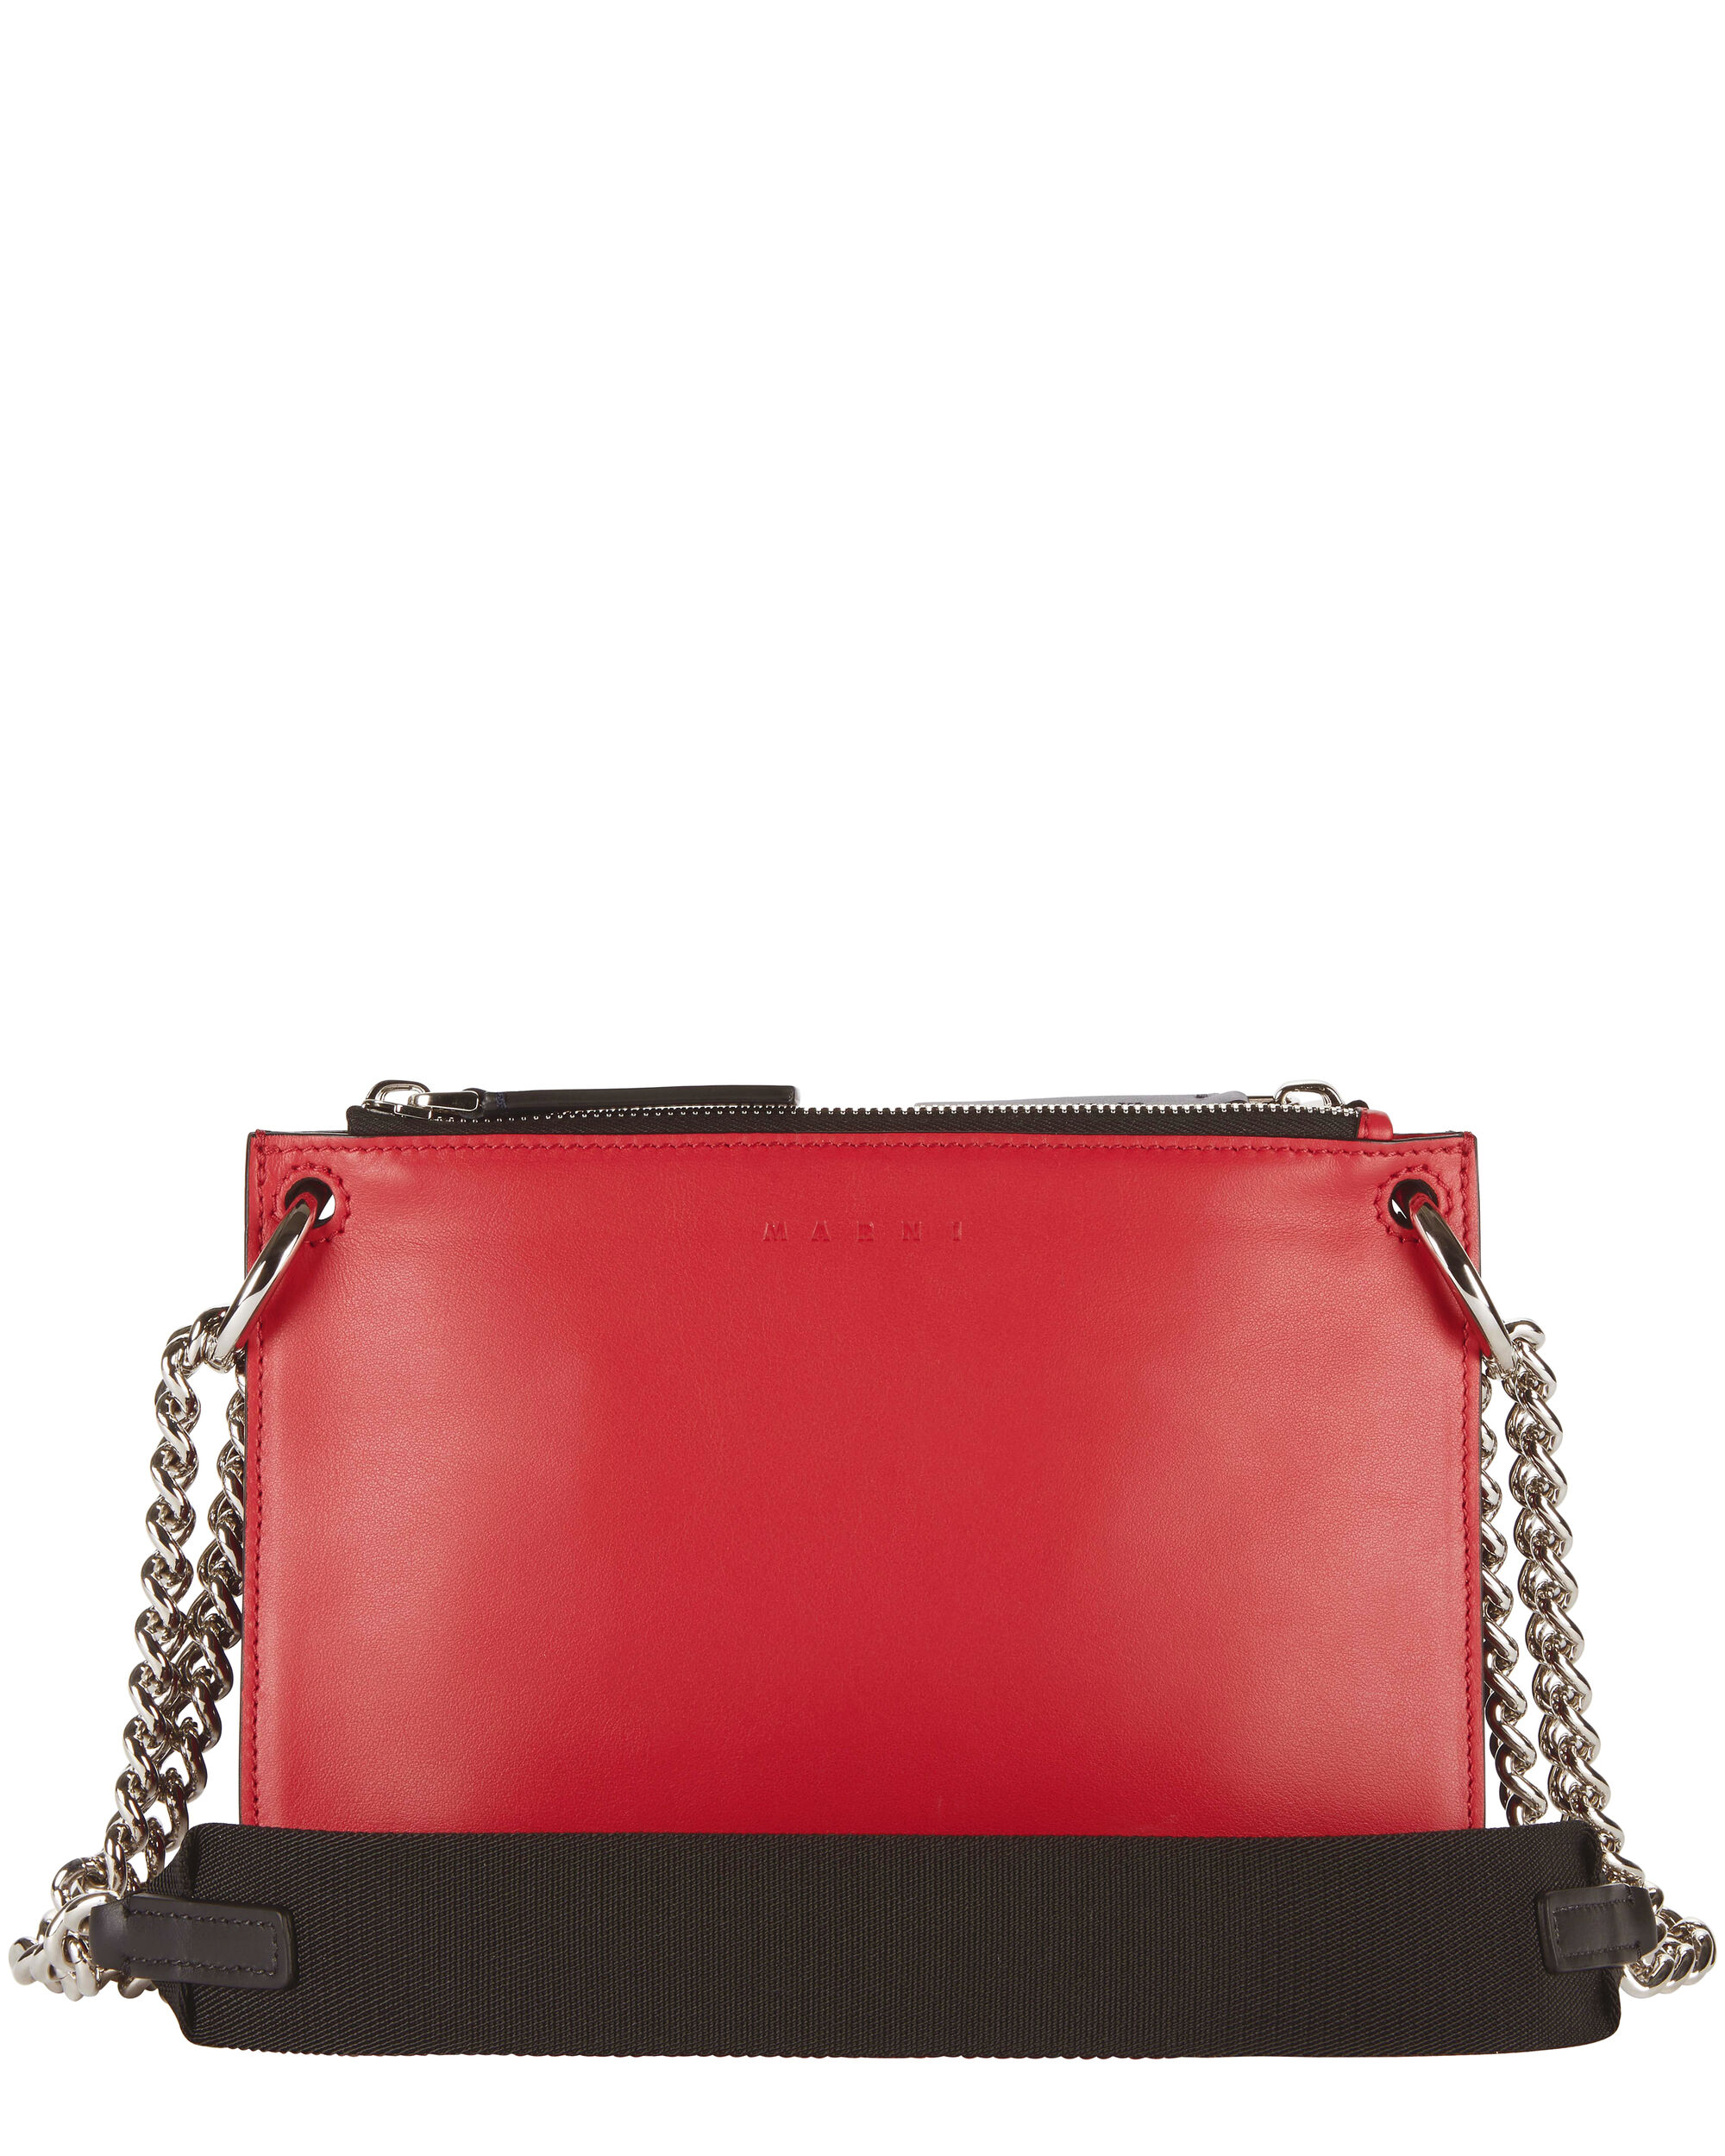 Bandoleer Chain Strap Double Clutch, NAVY, hi-res